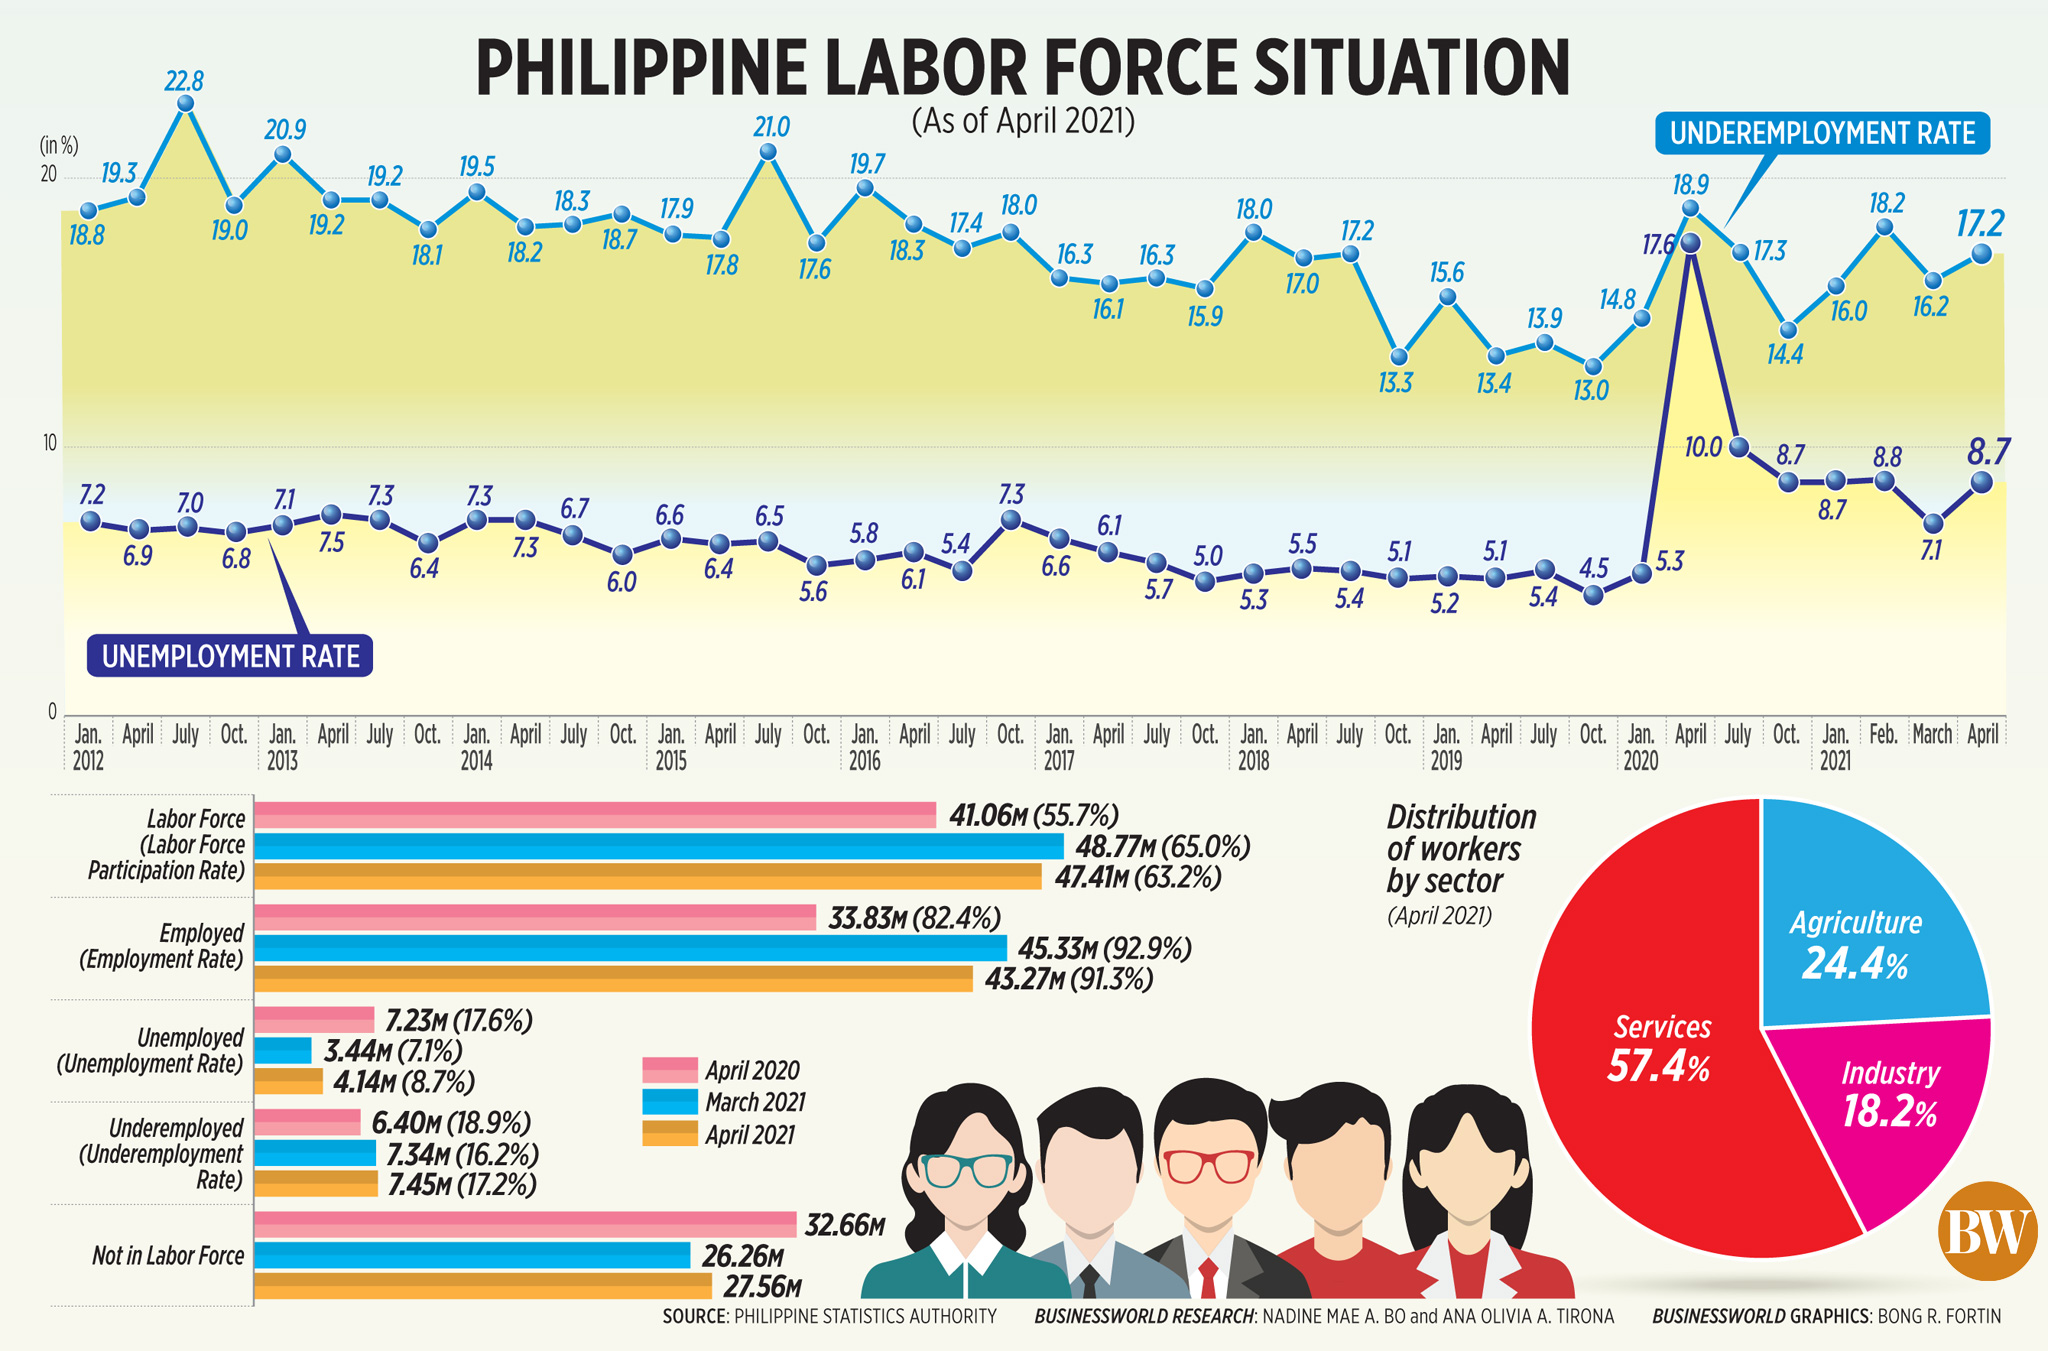 Philippine Labor Force Situation (Apr. 2021)